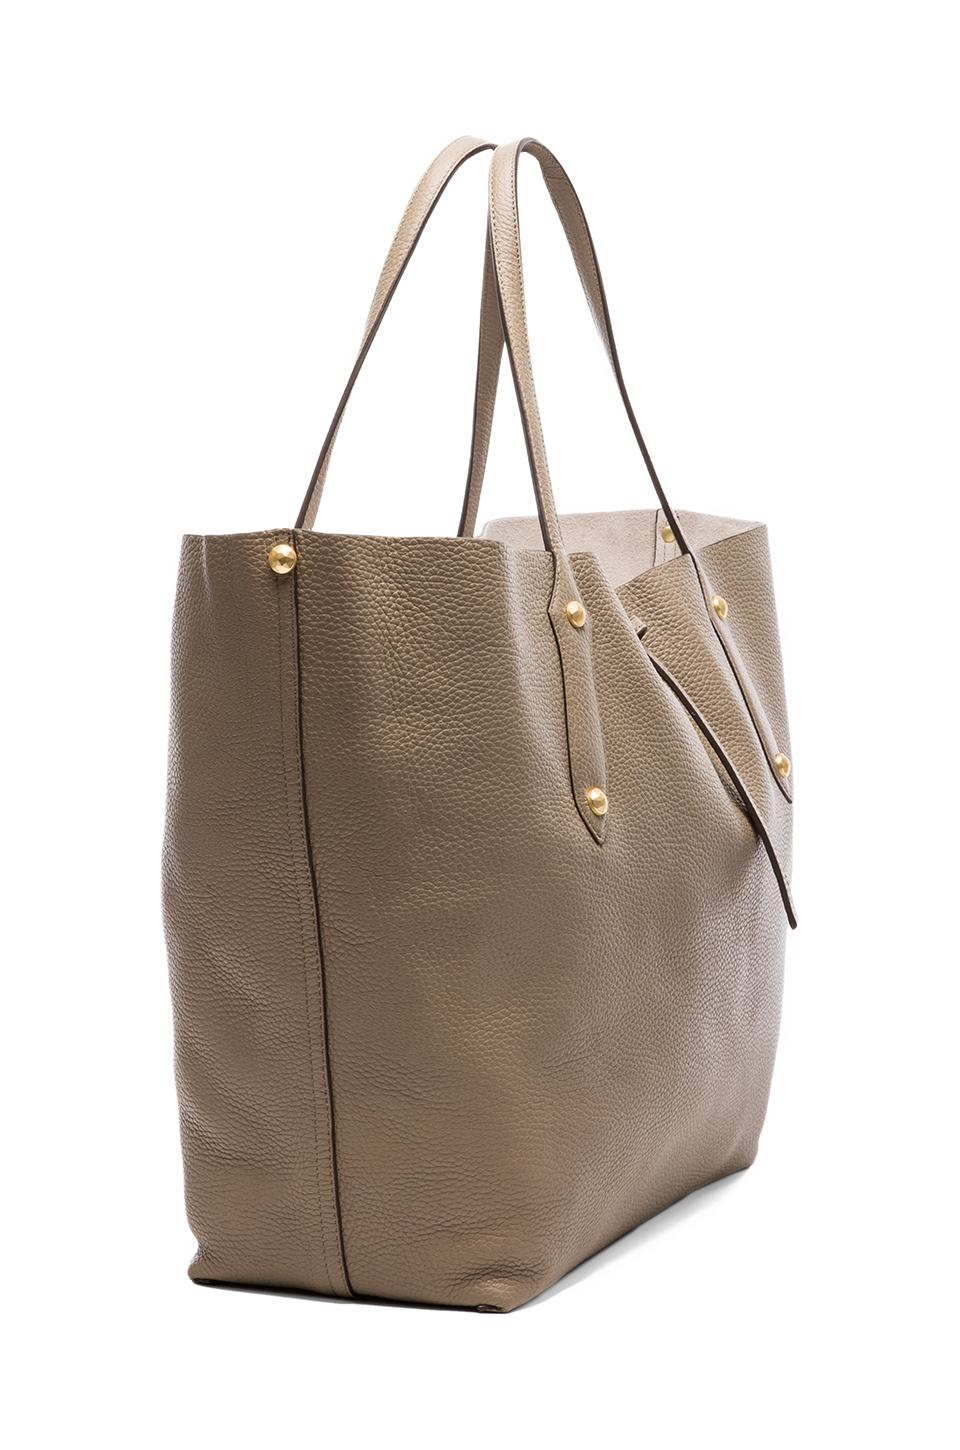 Annabel Ingall Large Isabella Tote in String